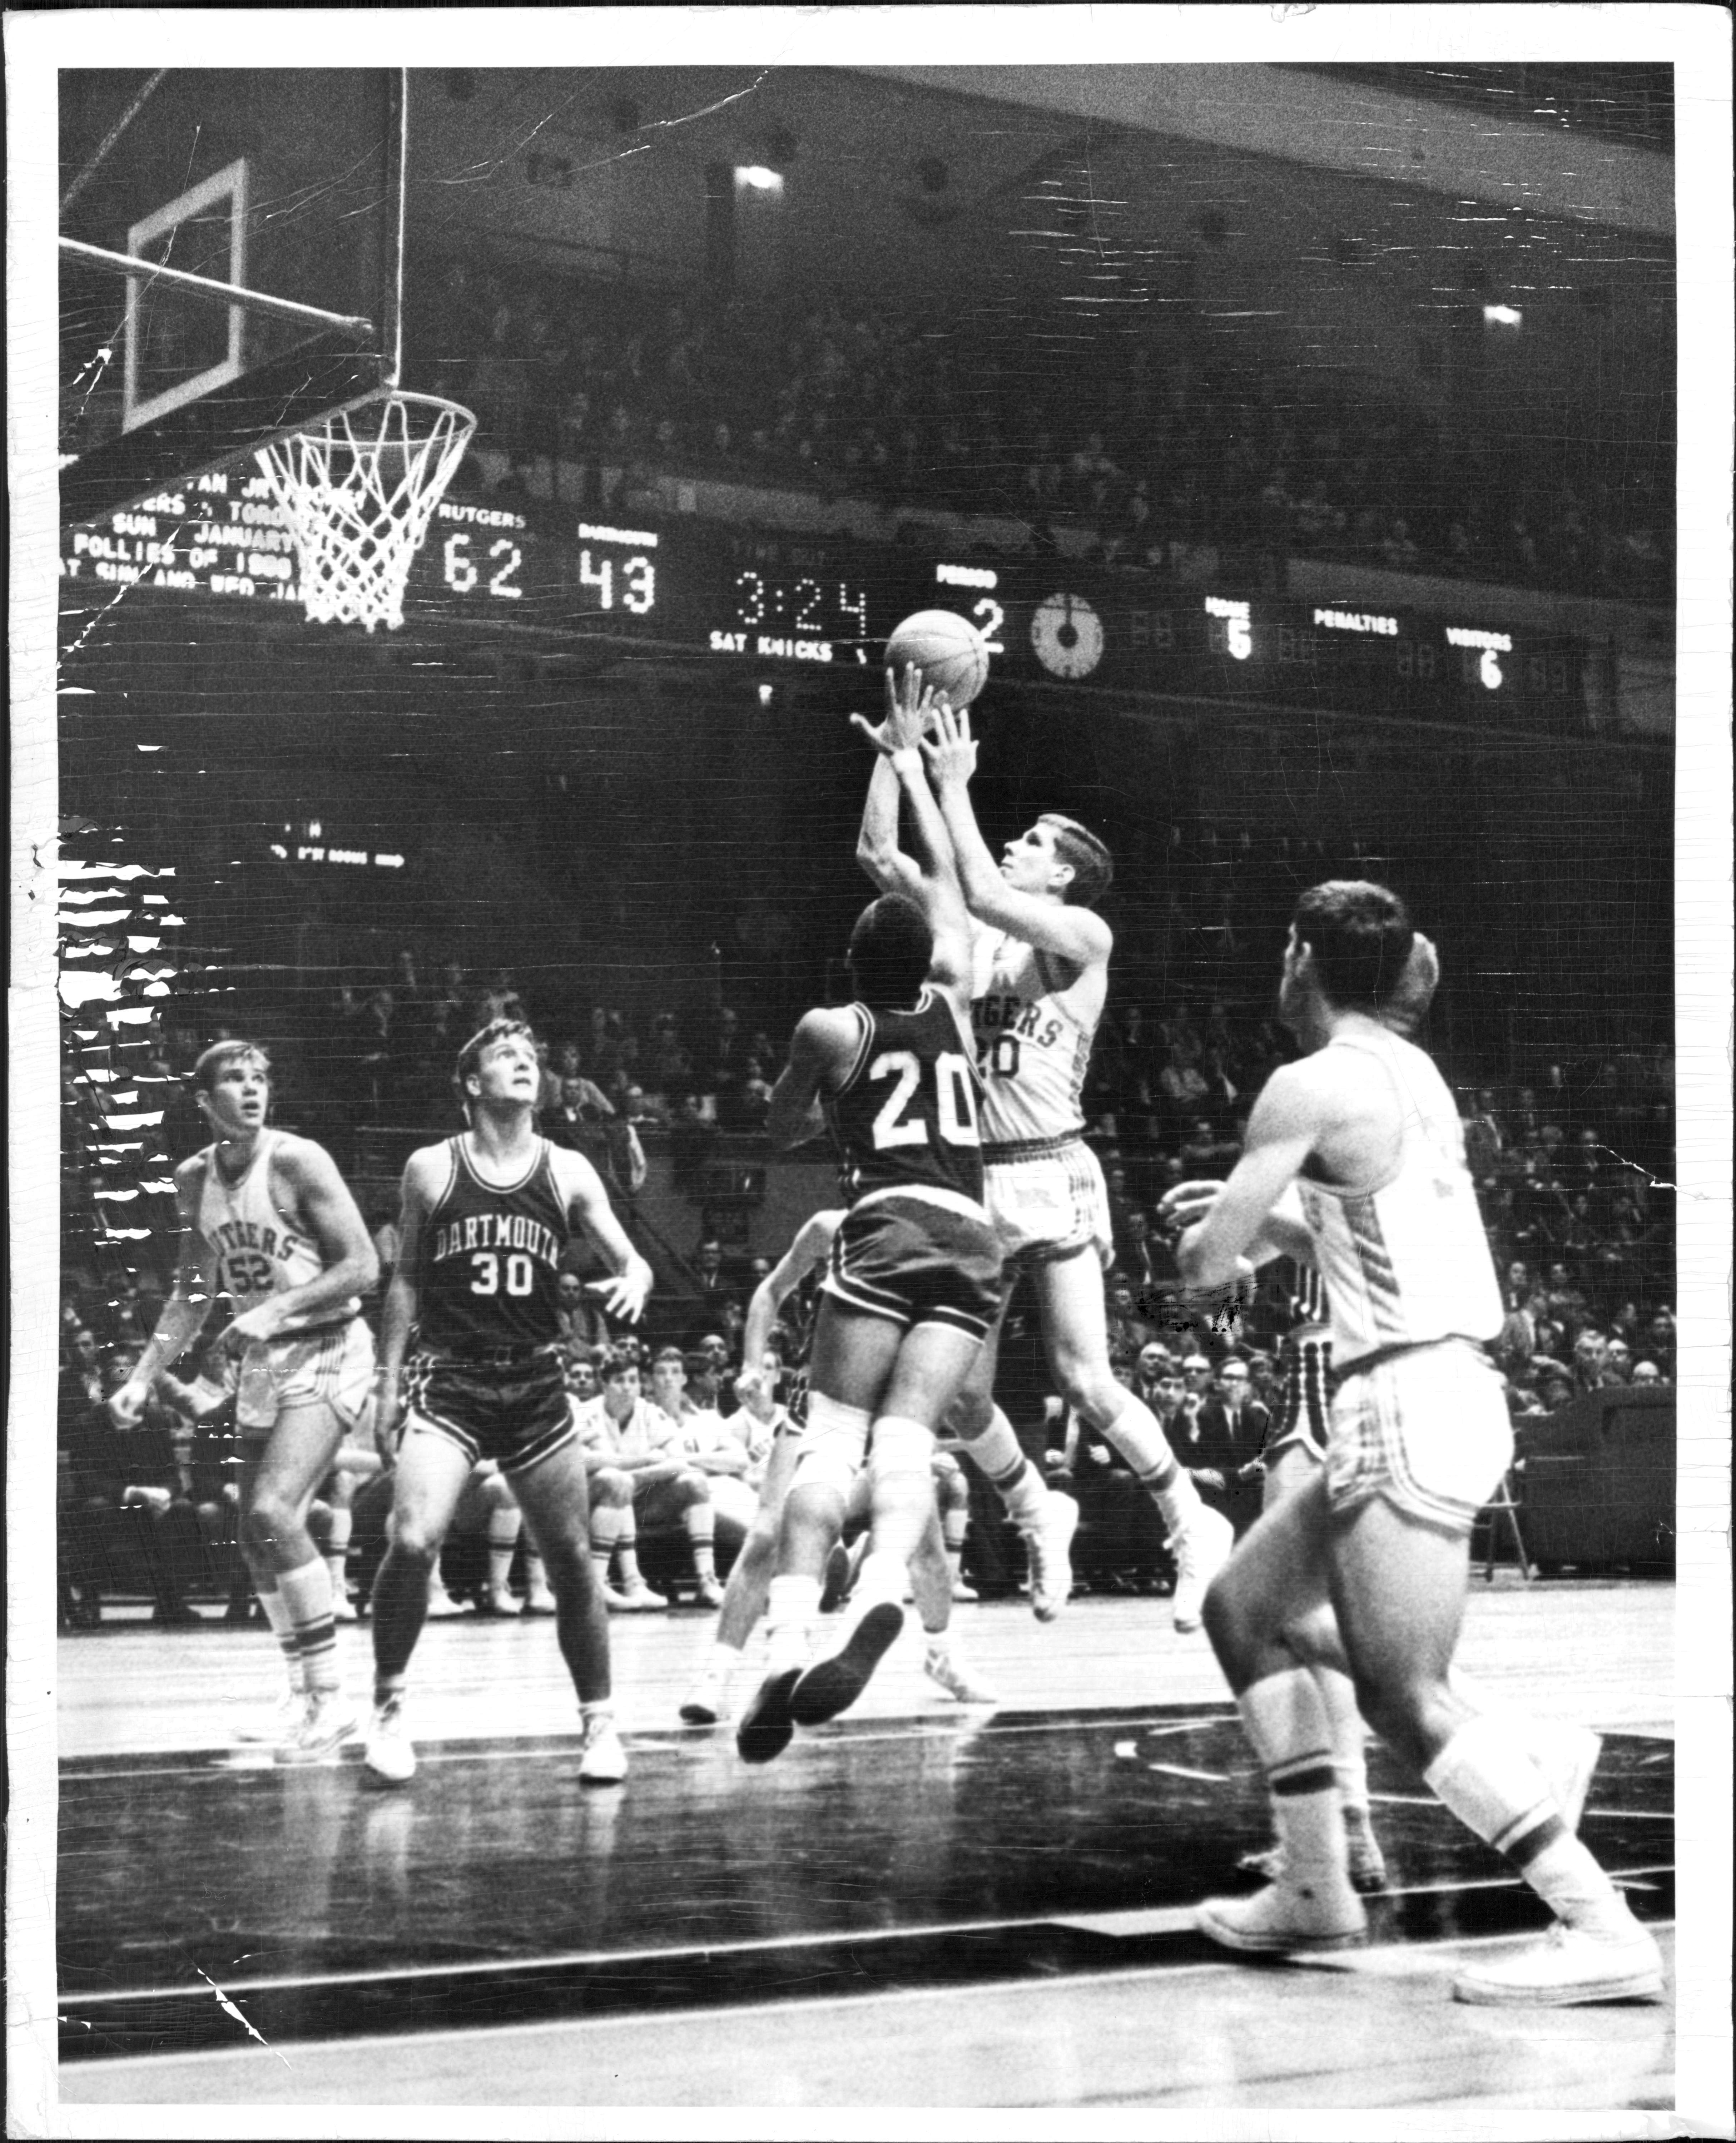 College Basketball Players - Rutgers University Lou Goetz (#20 in white) and Dartmouth College Henry Tyson (#20)